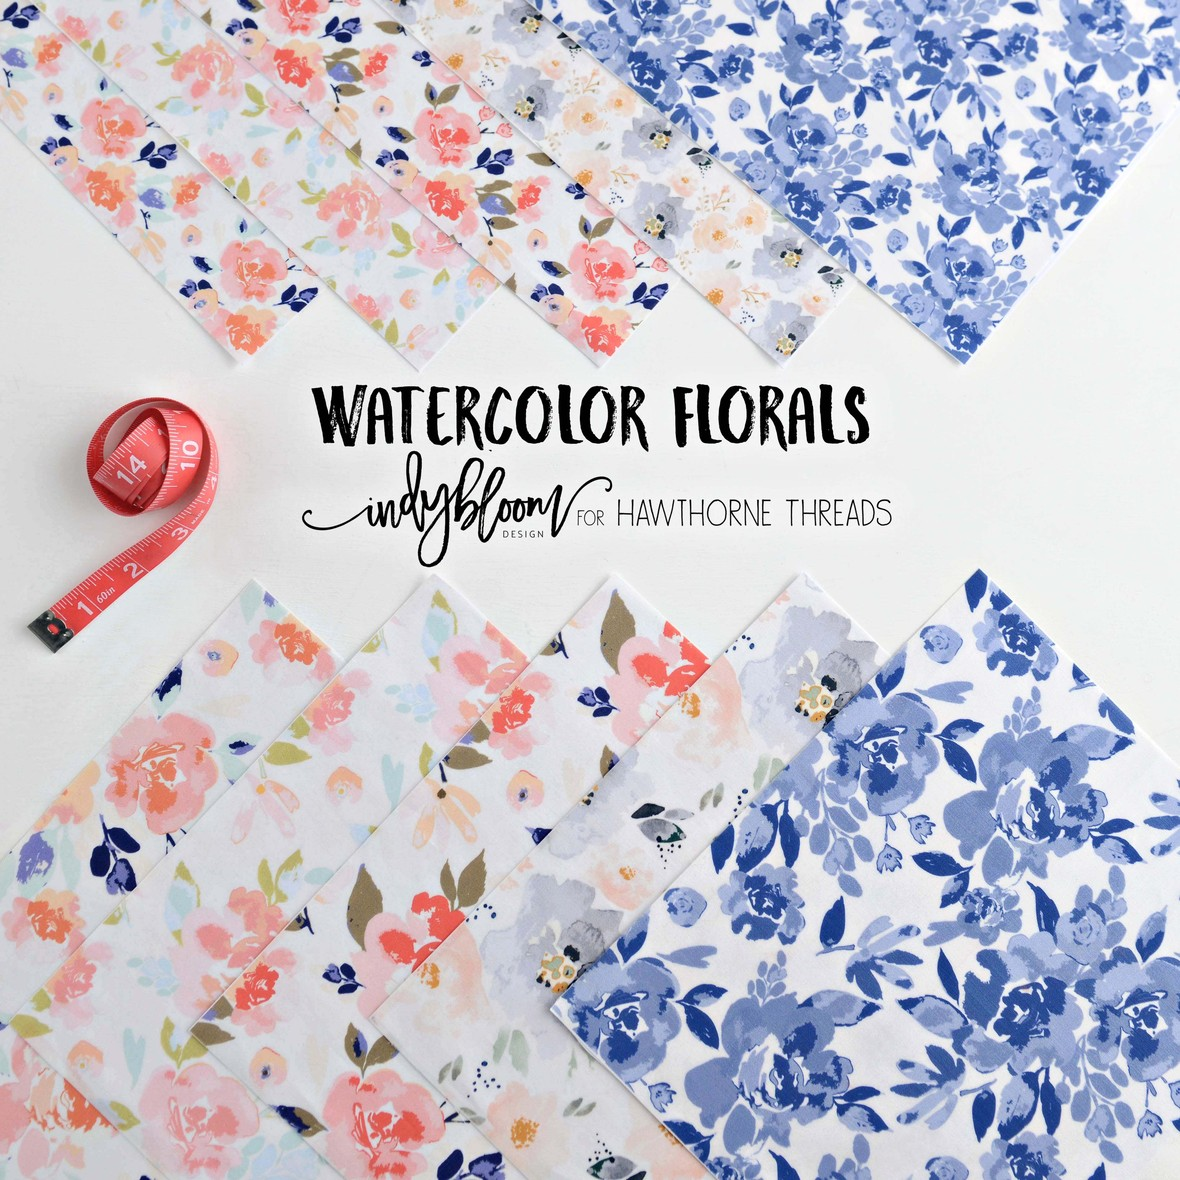 New Watercolor Florals Indy Bloom April with logo b